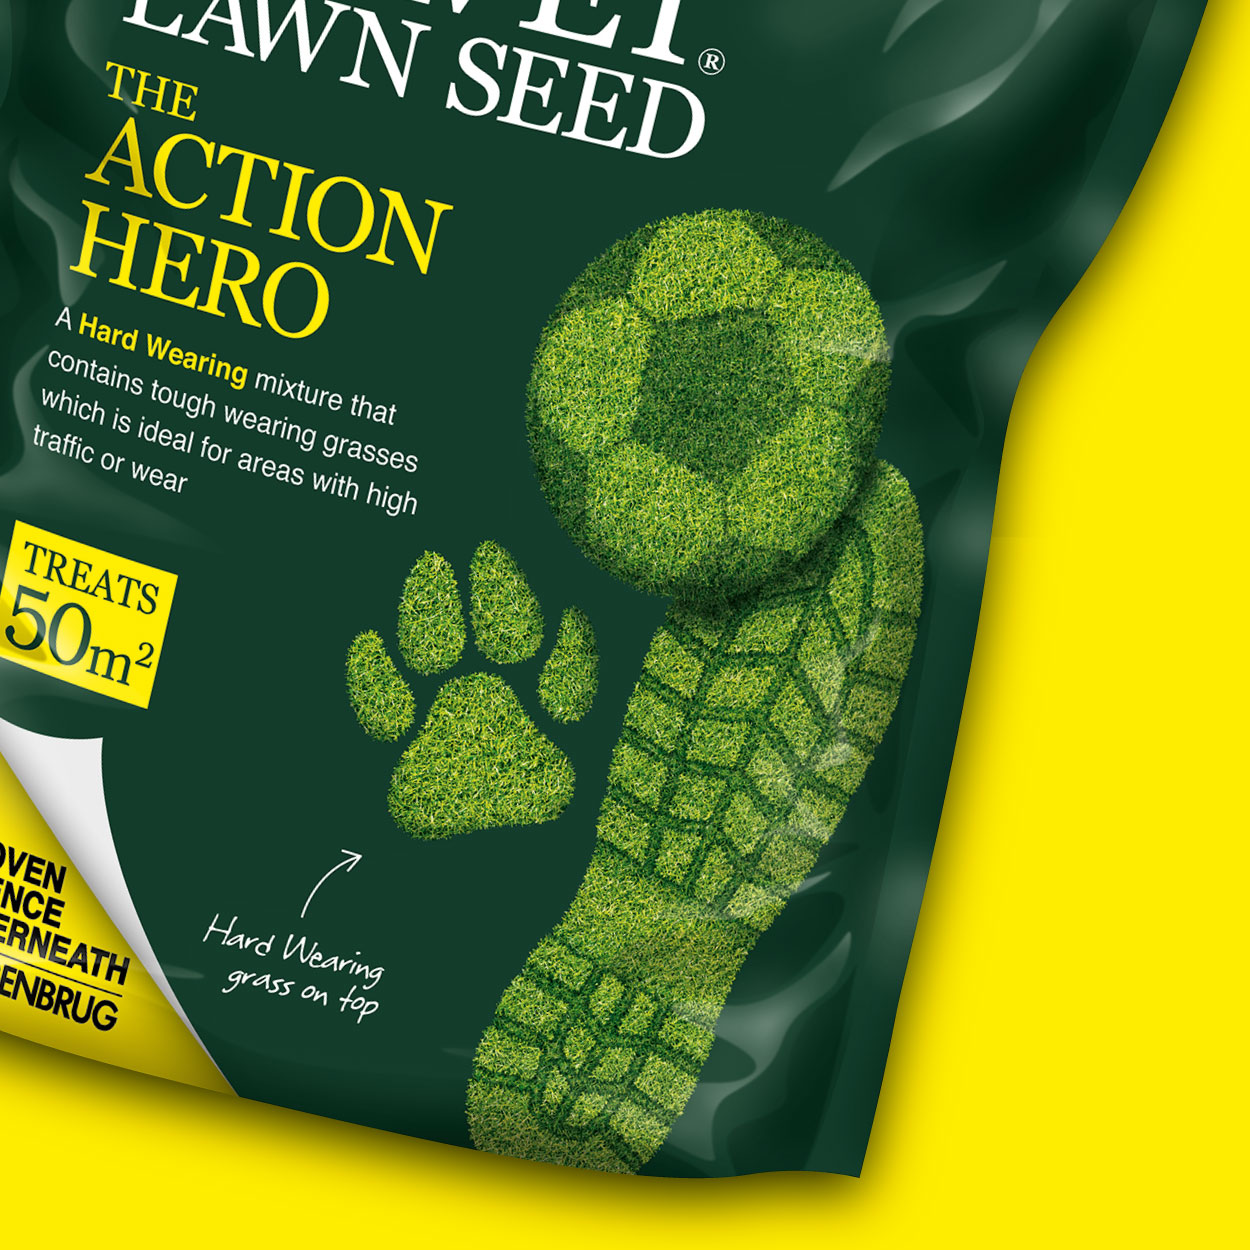 Green Velvet Lawn Seed Action Hero pouch detail